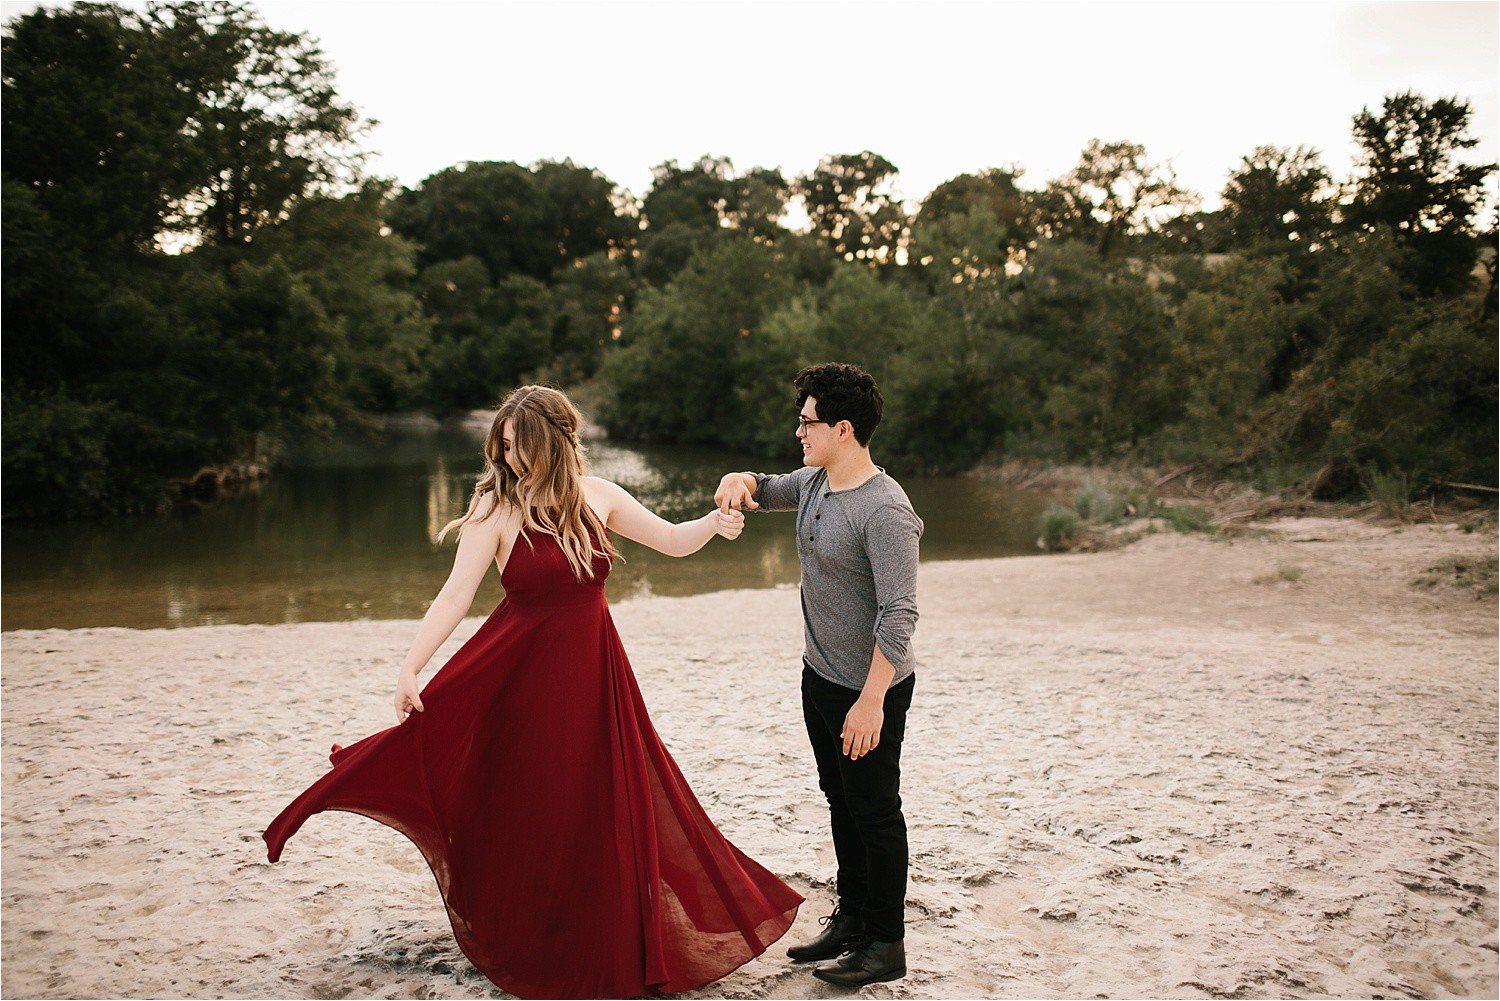 Austin Texas Engagement Session With Outfit Inspiration Flowy Red Dress From Lulu S At